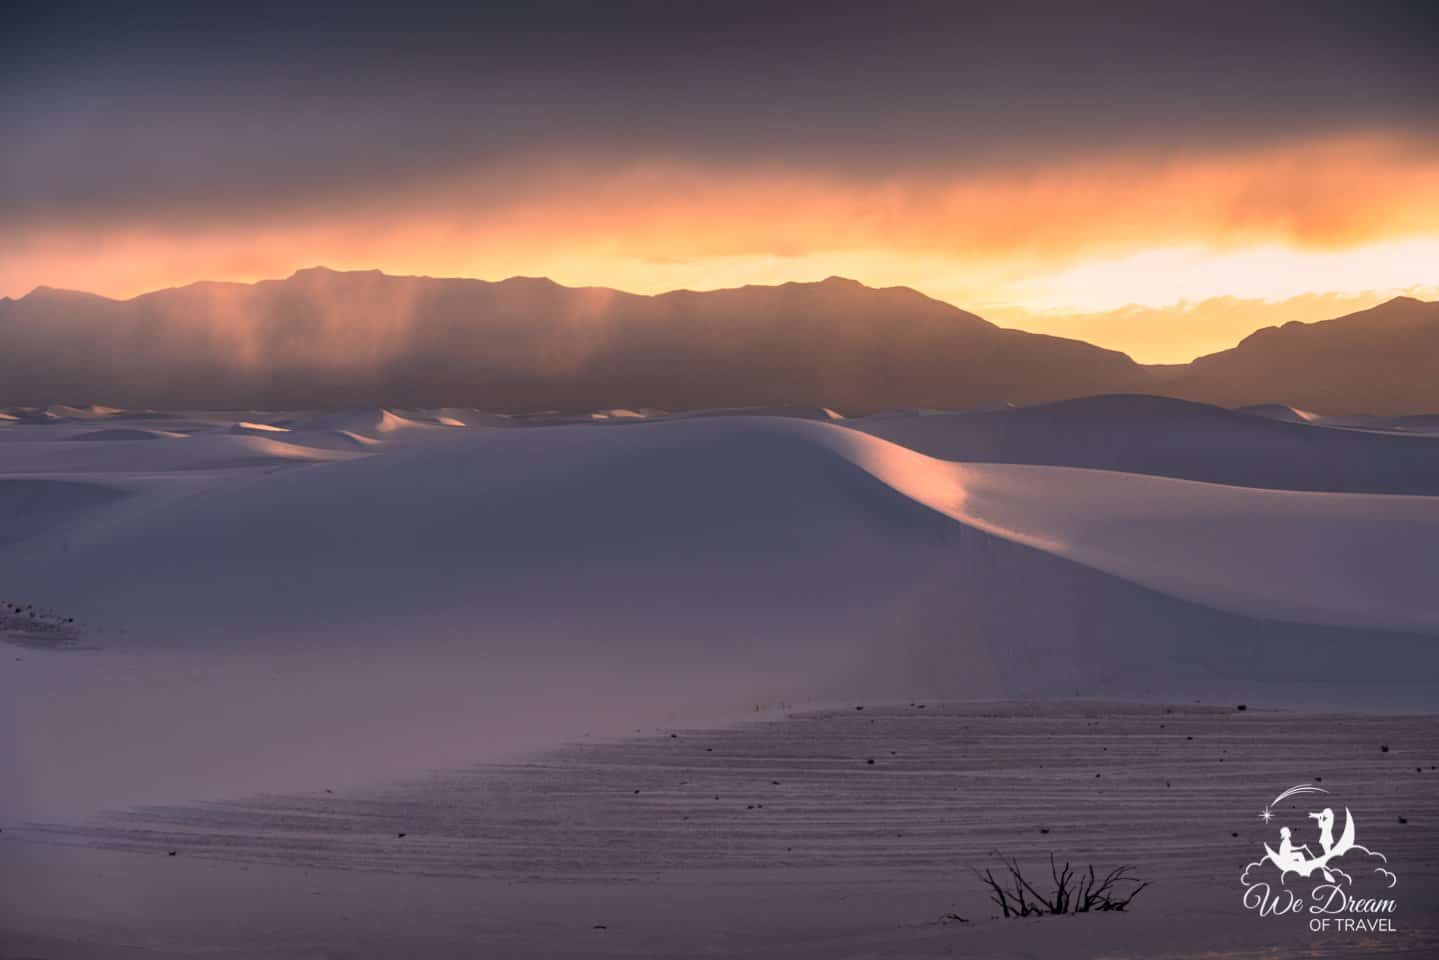 As the sun sets gloriously on the dunes, so too does it set on our White Sands National Park guide.